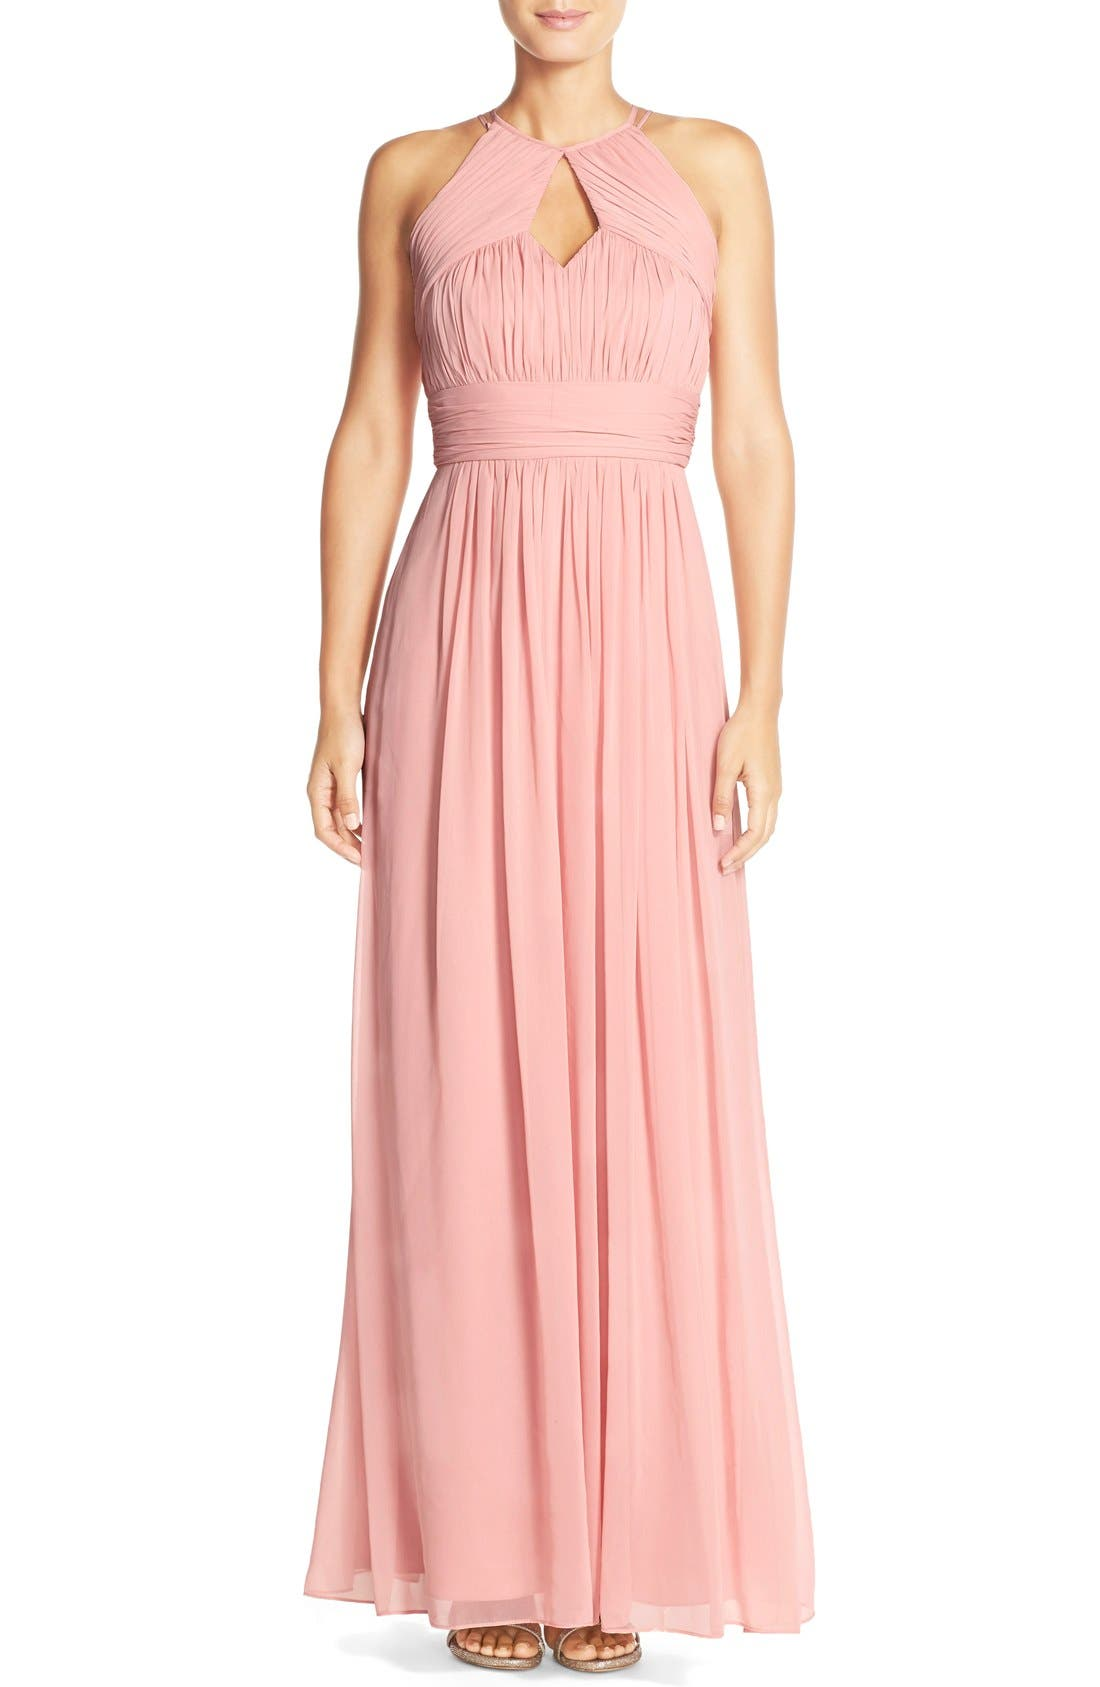 Alternate Image 1 Selected - DessyCollection RuchedChiffon Keyhole Halter Gown